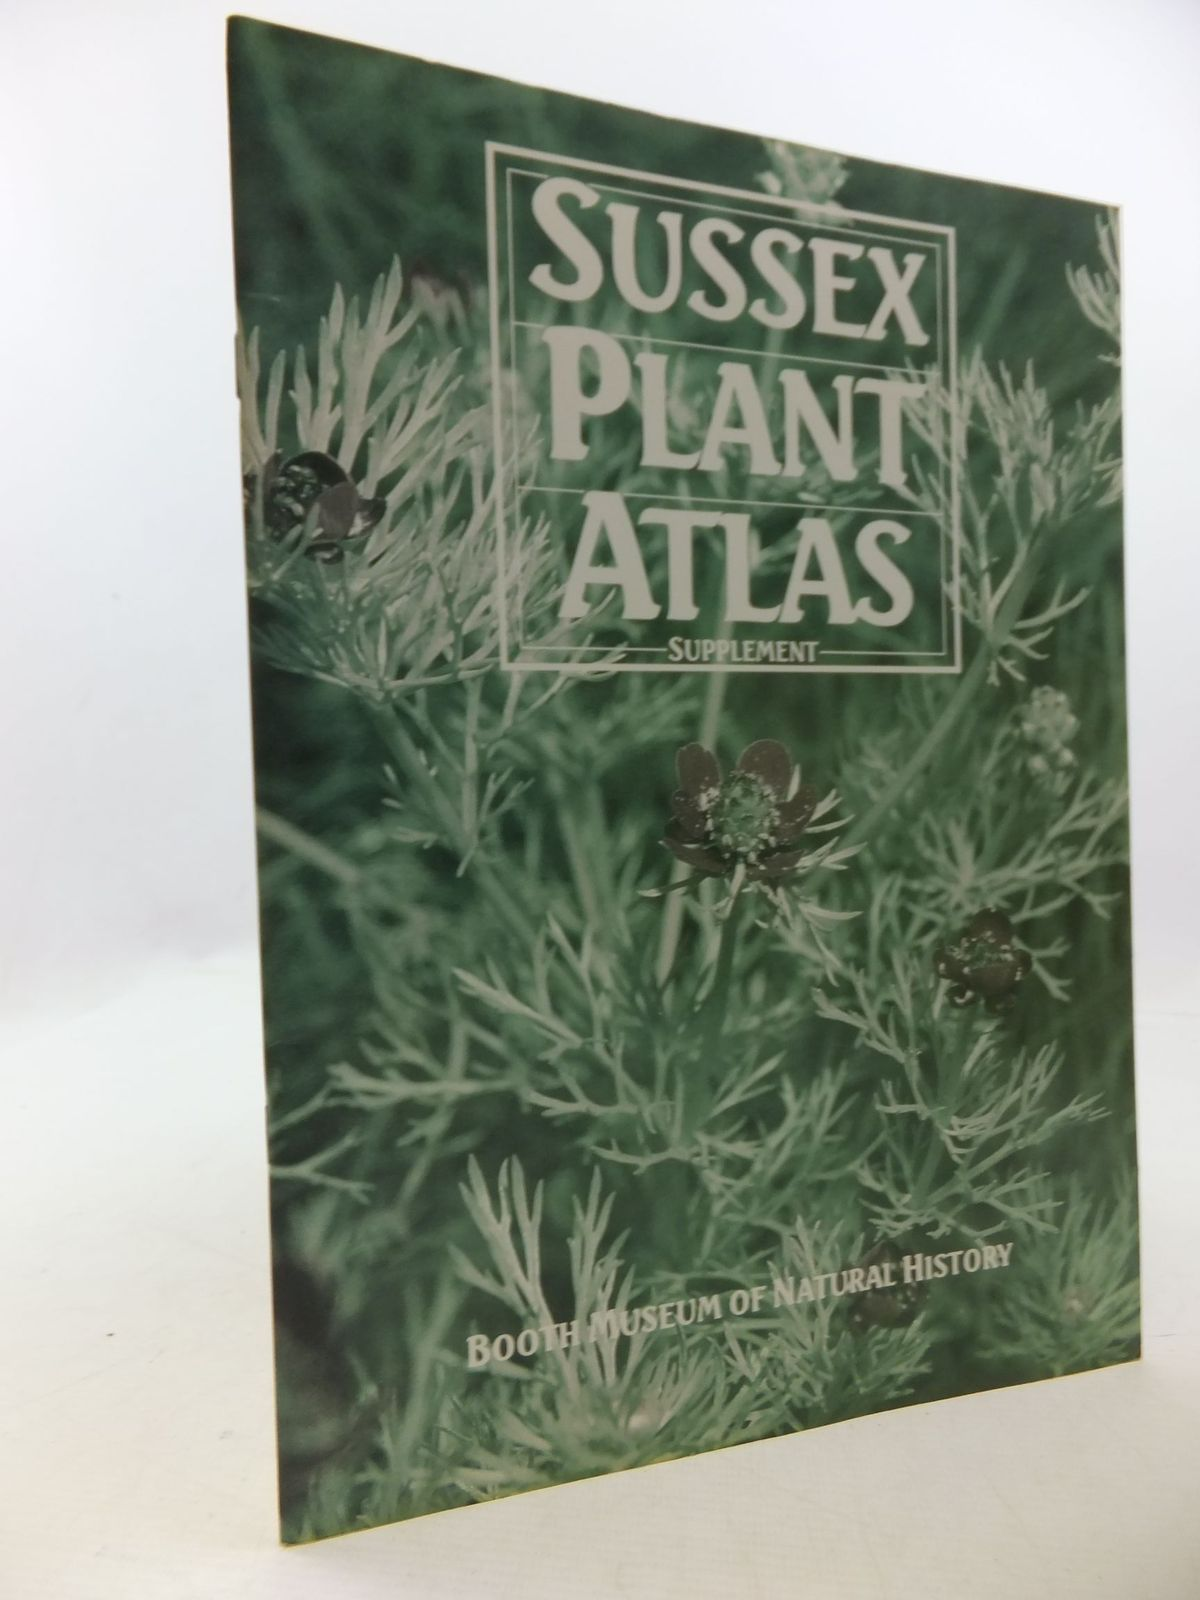 Photo of SUSSEX PLANT ATLAS SELECTED SUPPLEMENT- Stock Number: 2112502